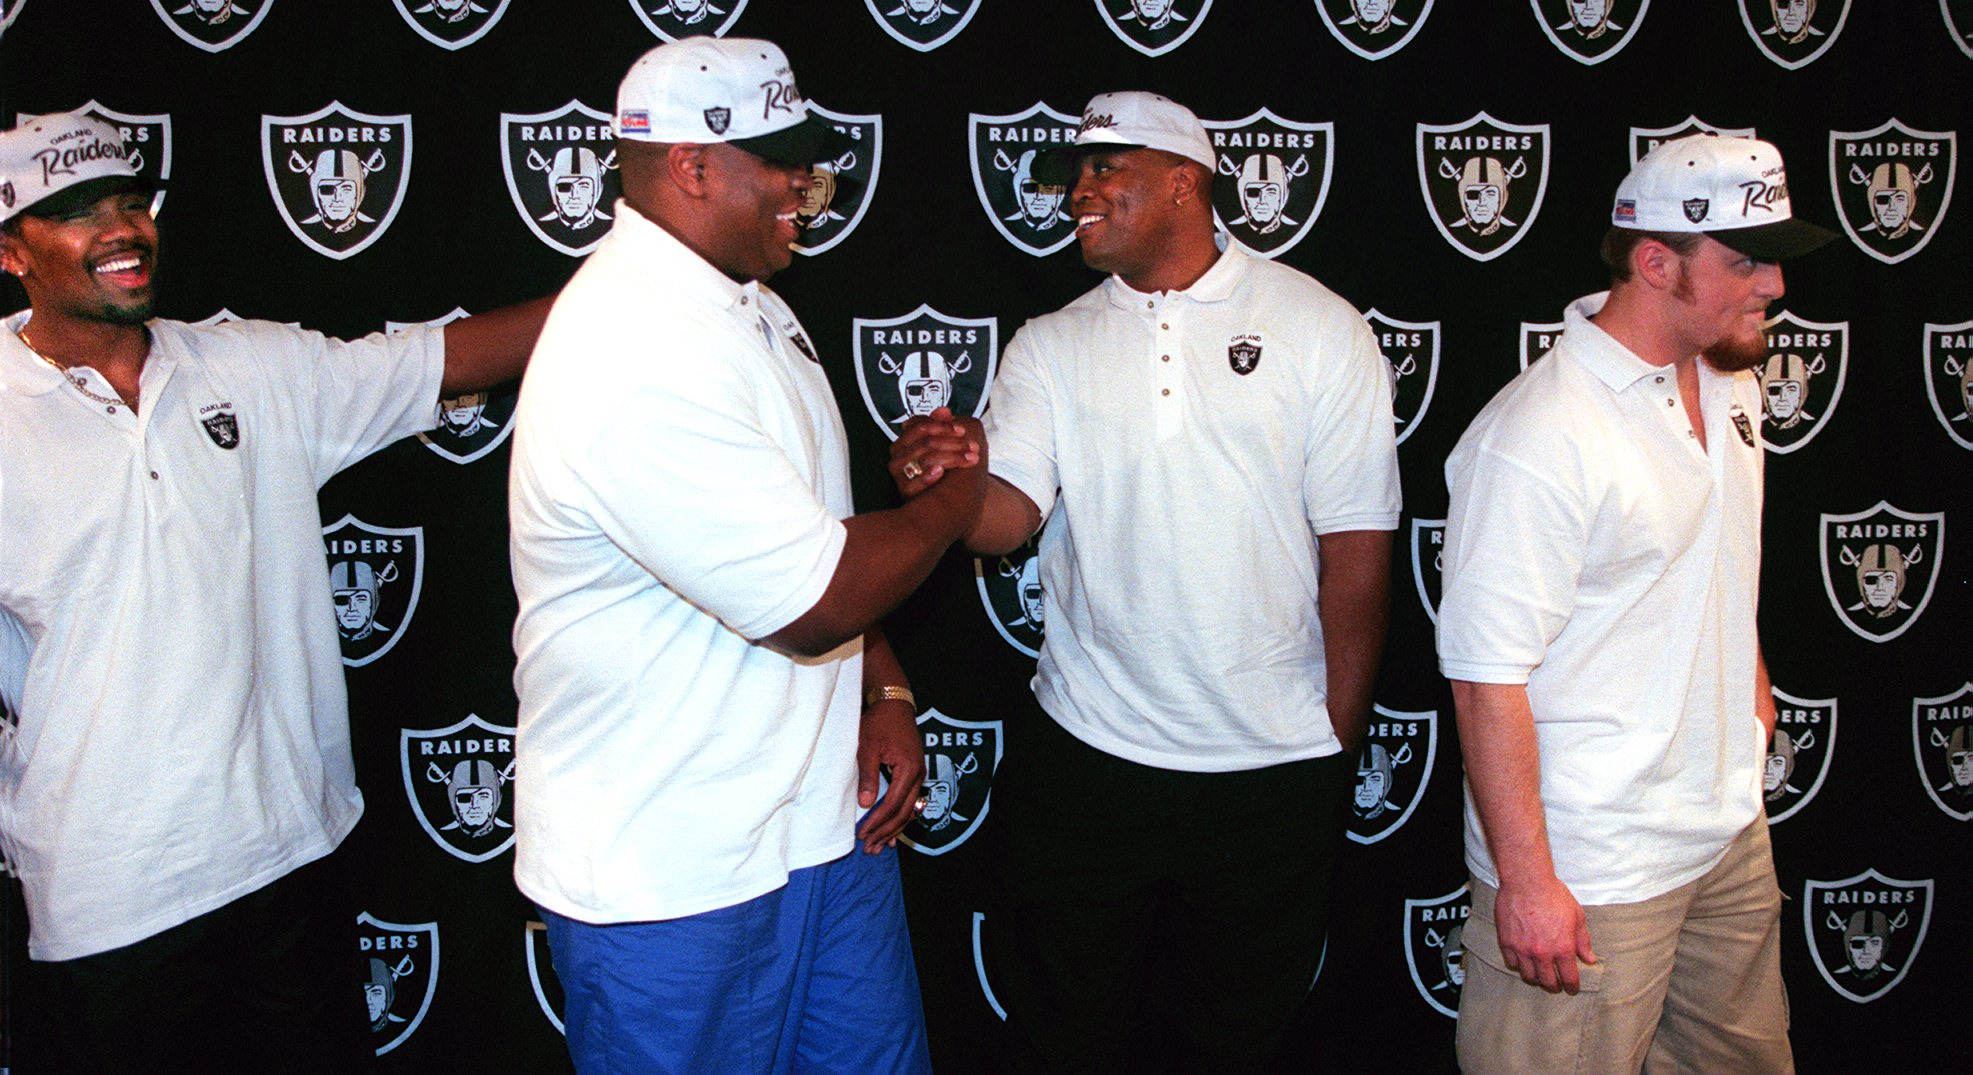 Leon Bender (second from right) died only weeks after he signed his first NFL contract with the Oakland Raiders in 1998.